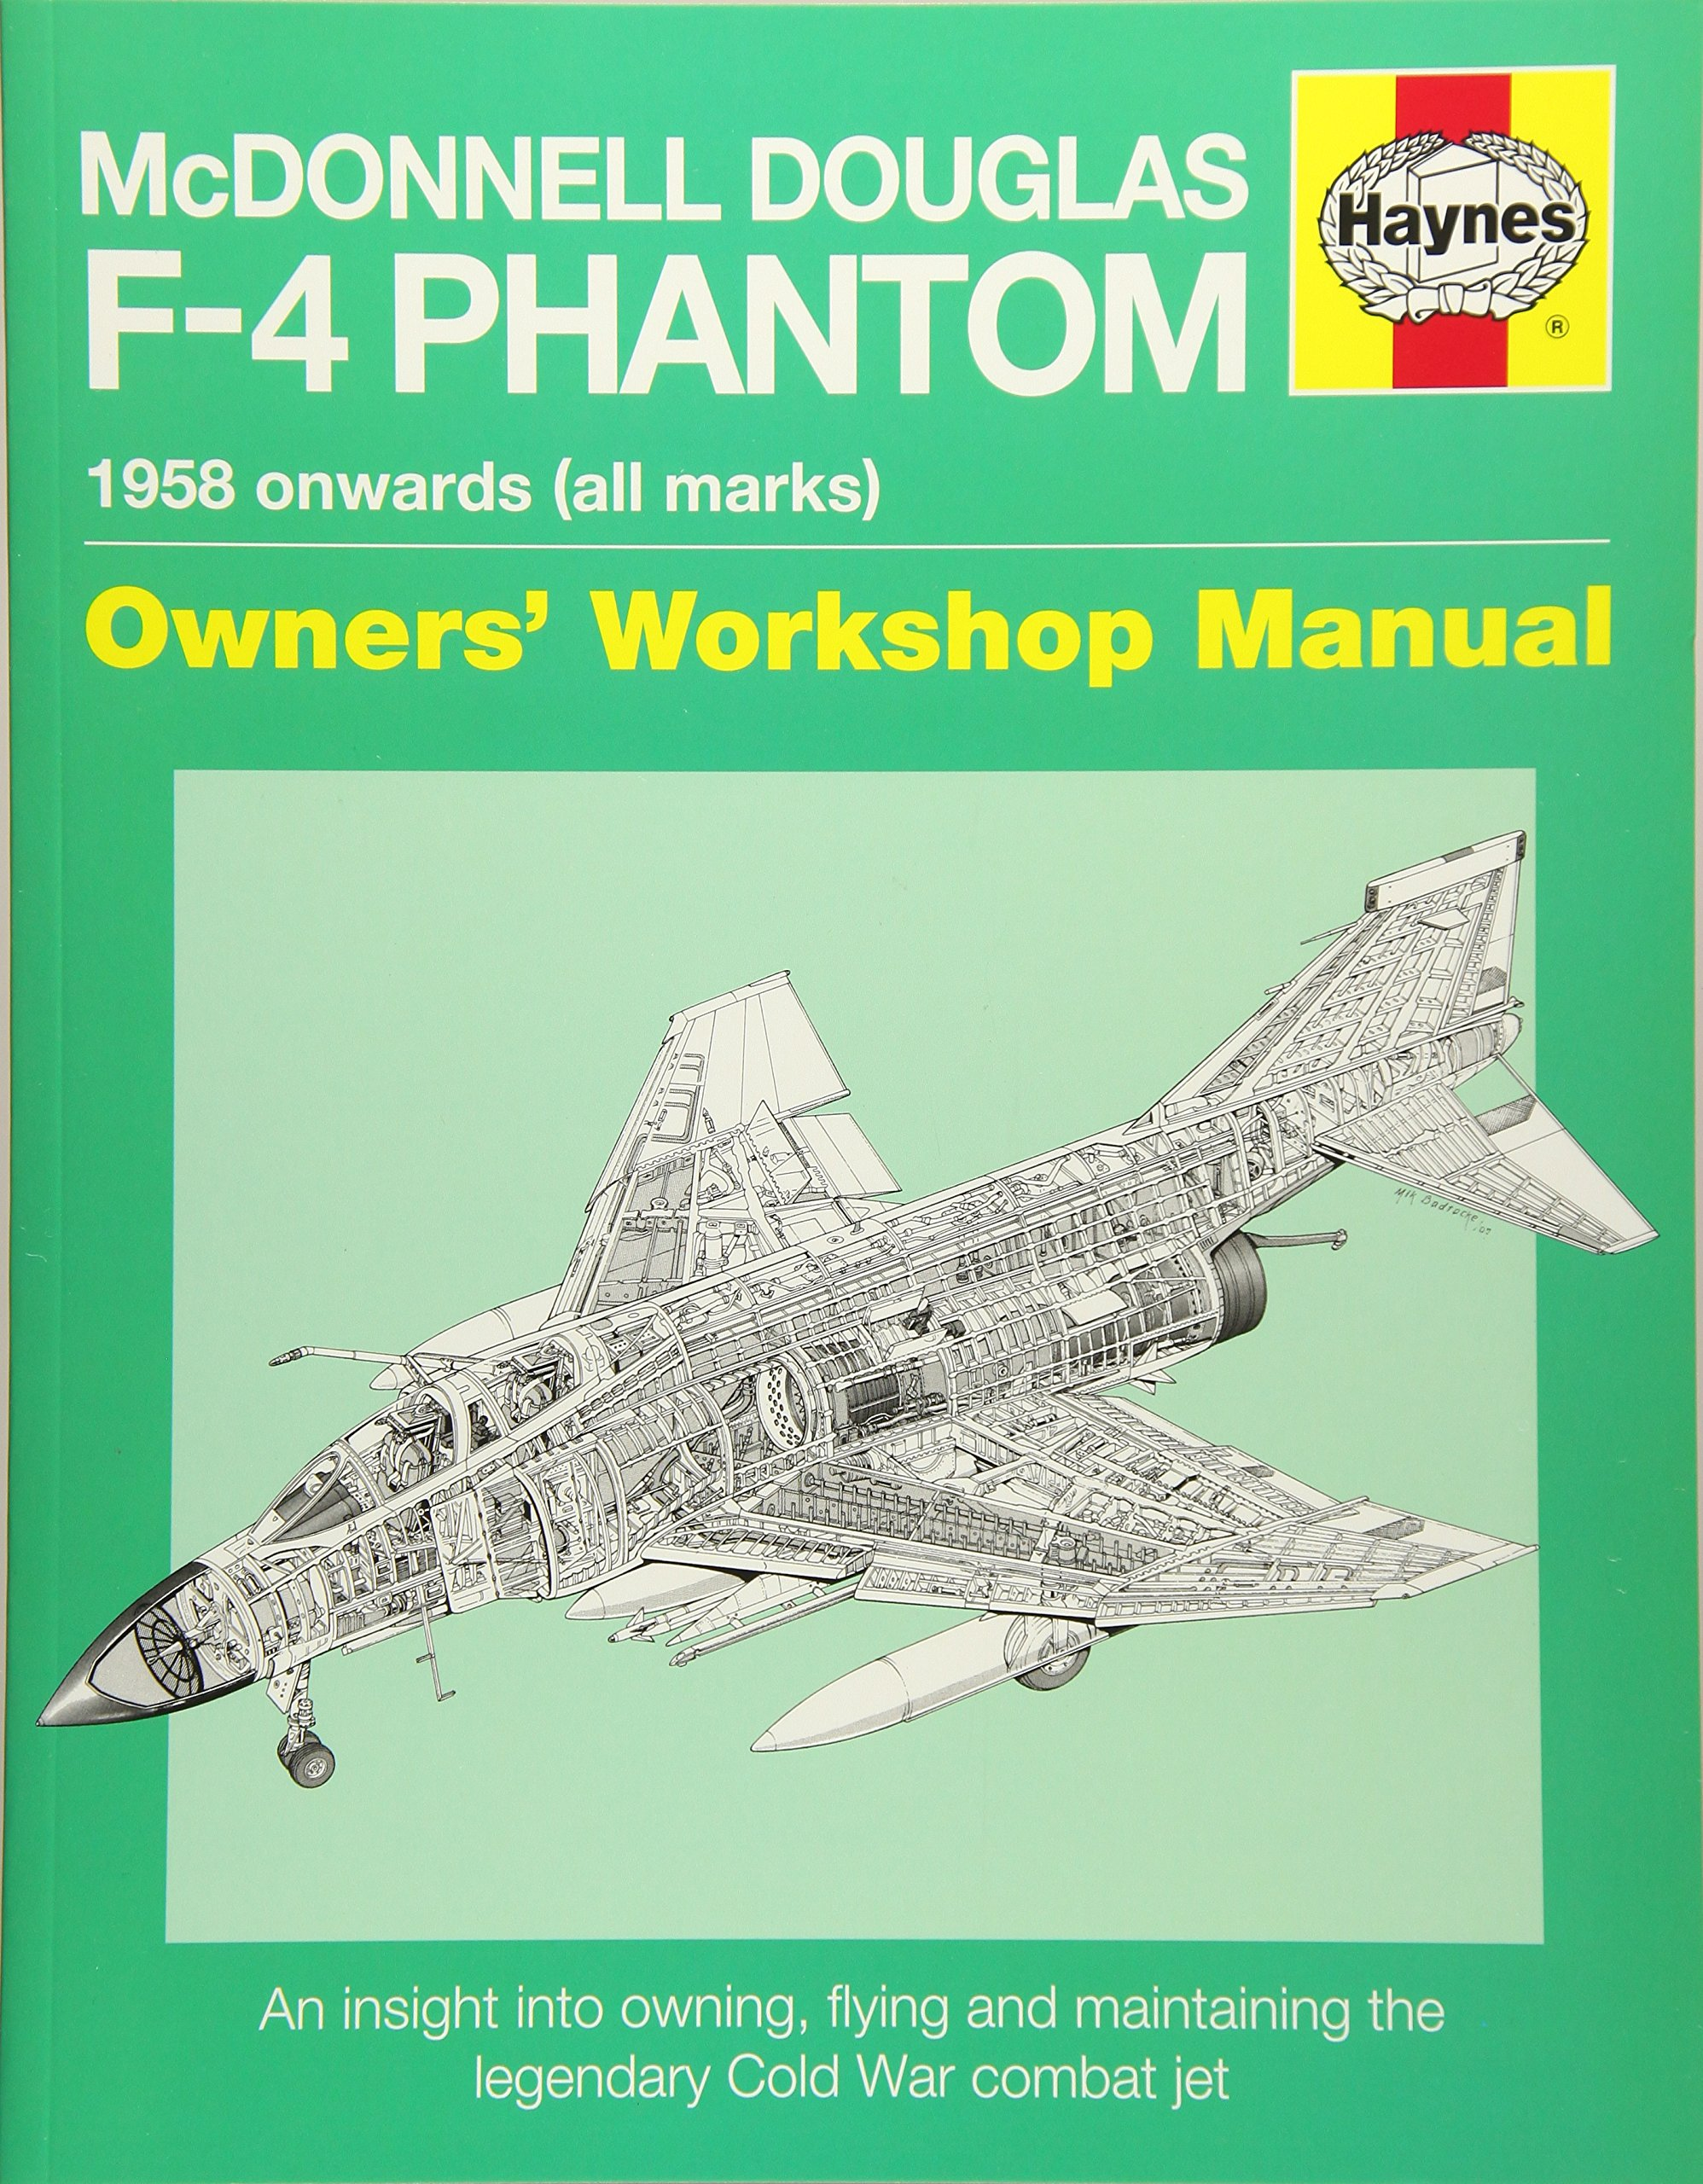 Read Online McDonnell Douglas F-4 Phantom 1958 Onwards (all marks): An Insight into Owning, Flying and Maintaining the legendary Cold War combat jet (Owners' Workshop Manual) pdf epub